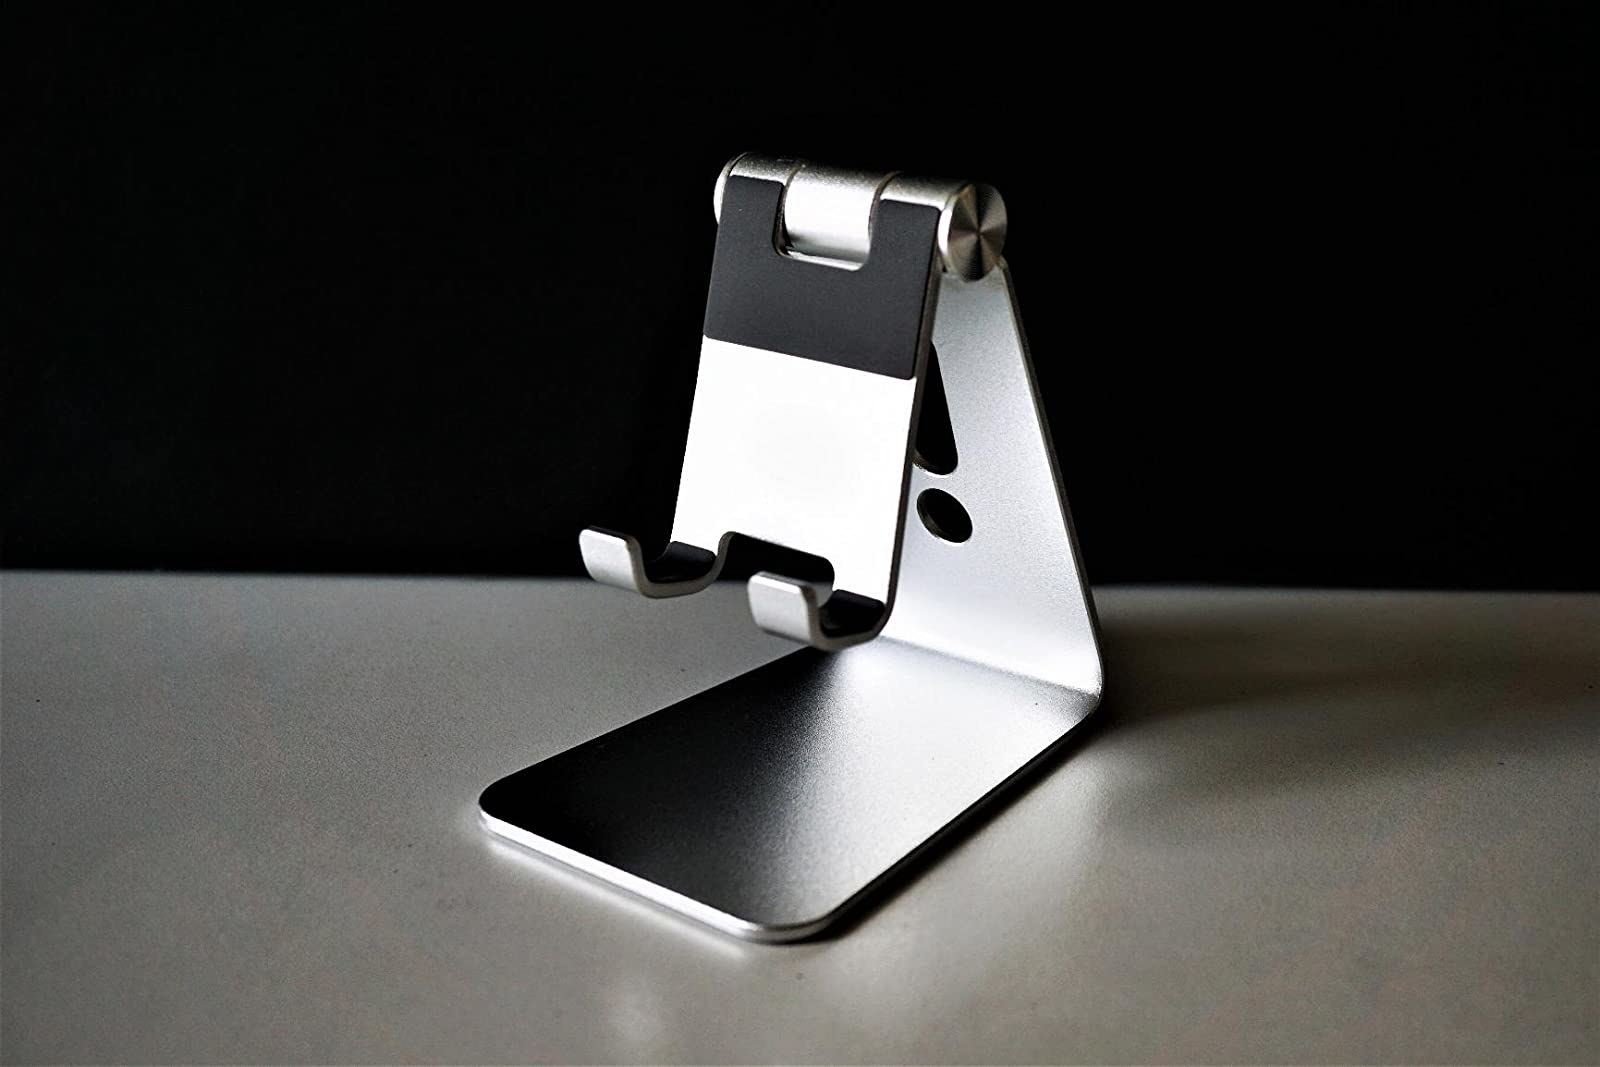 the silver phone holder